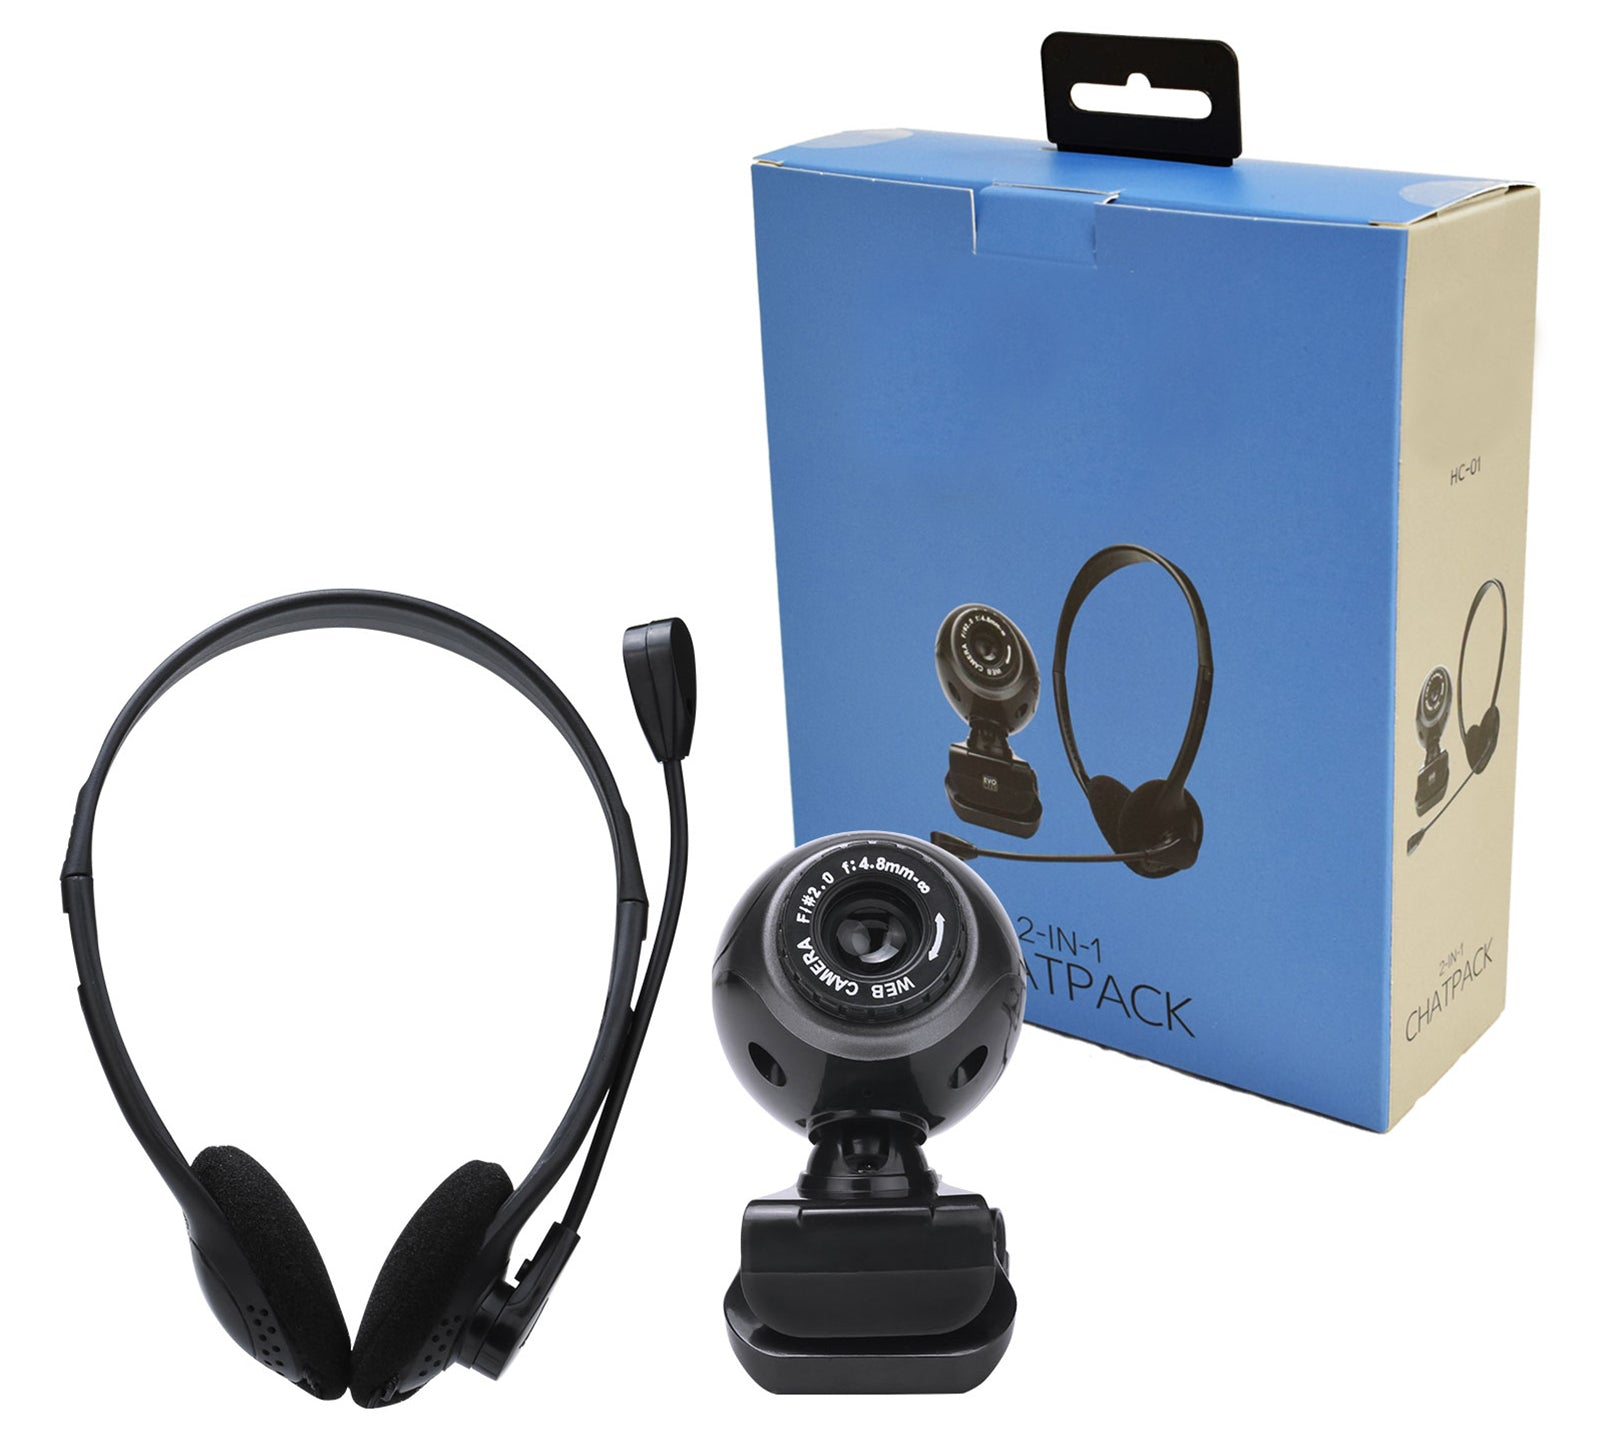 Webcam And Headset With Adjustable Microphone Bundle - CHAT-COMBO